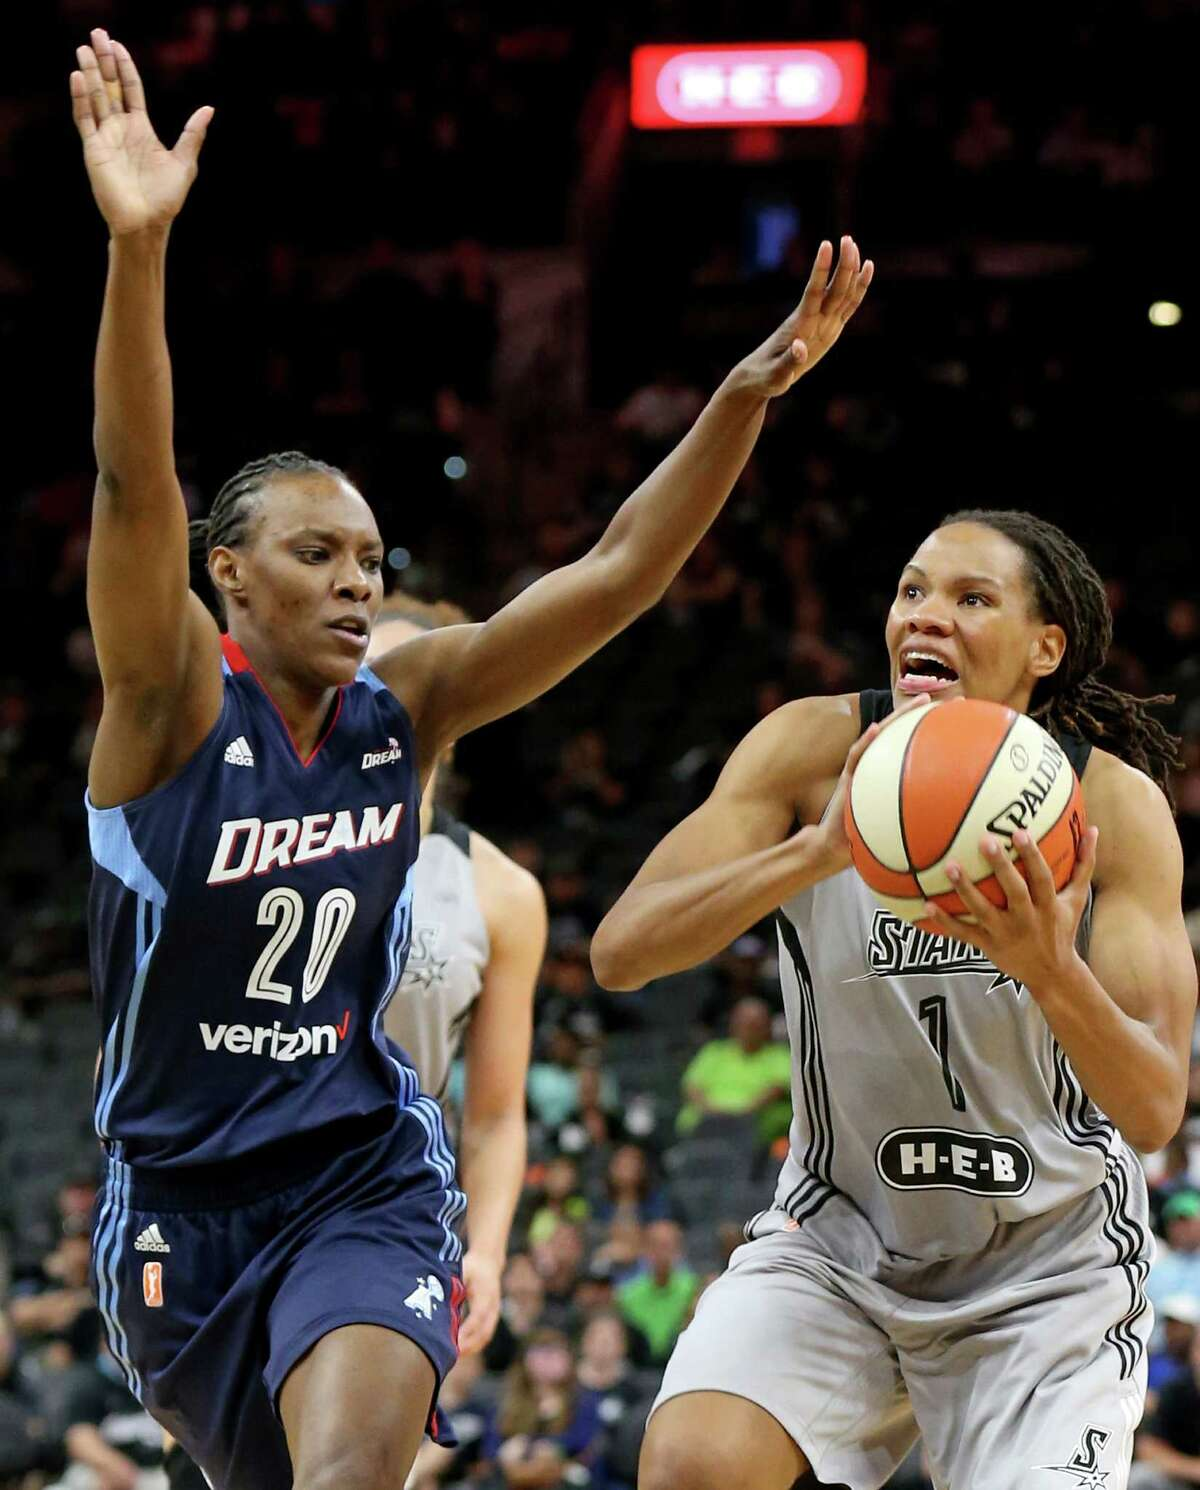 San Antonio Stars' Monique Currie shoots around Atlanta Dream's Sancho Lyttle during second half action Saturday May 14, 2016 at the AT&T Center. The Dream won in overtime 73-63.